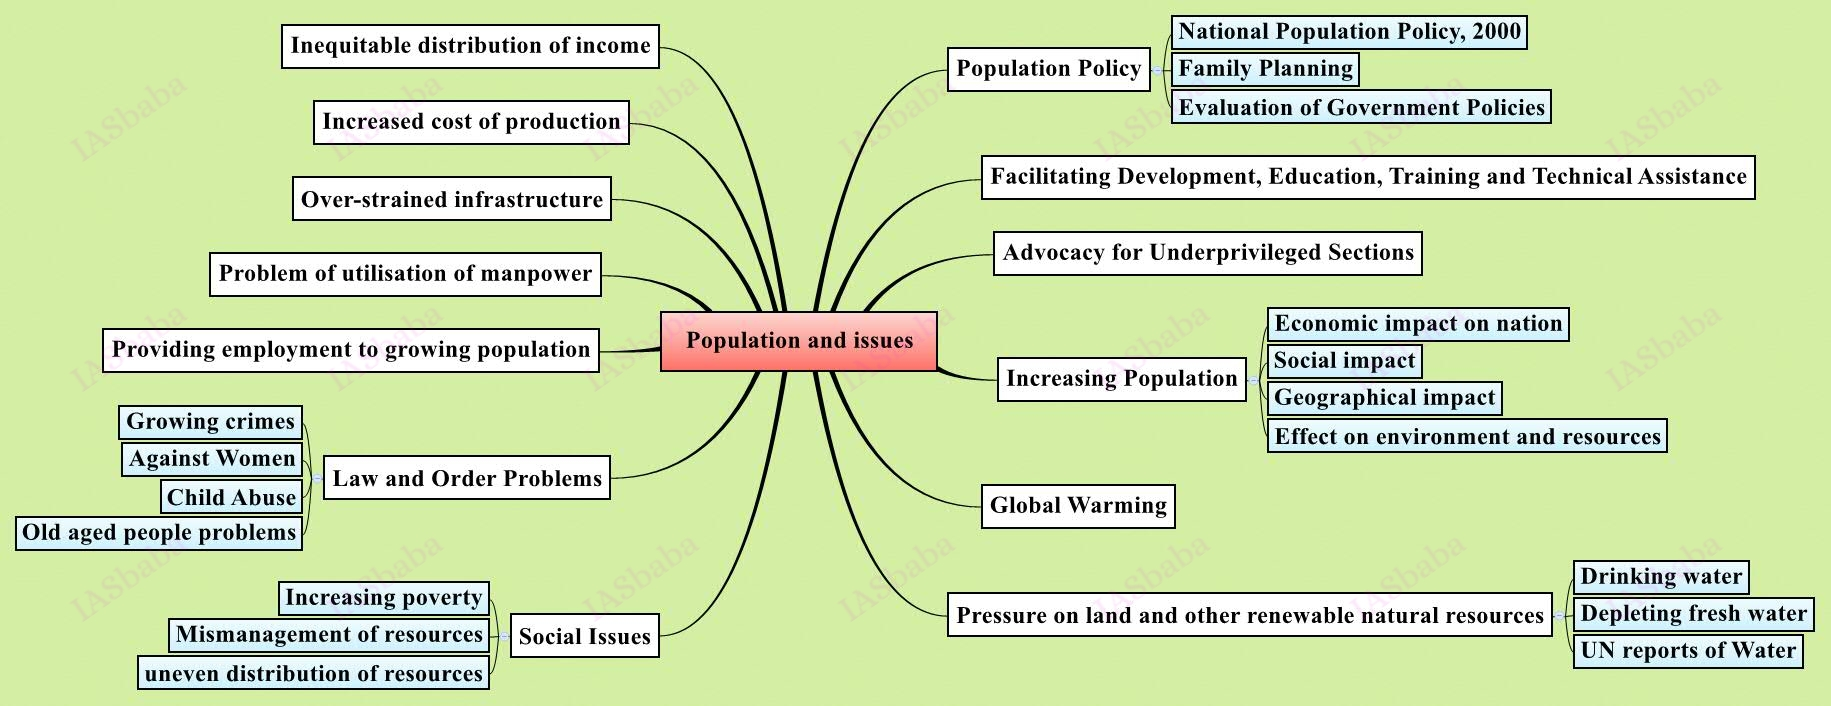 Population and issues